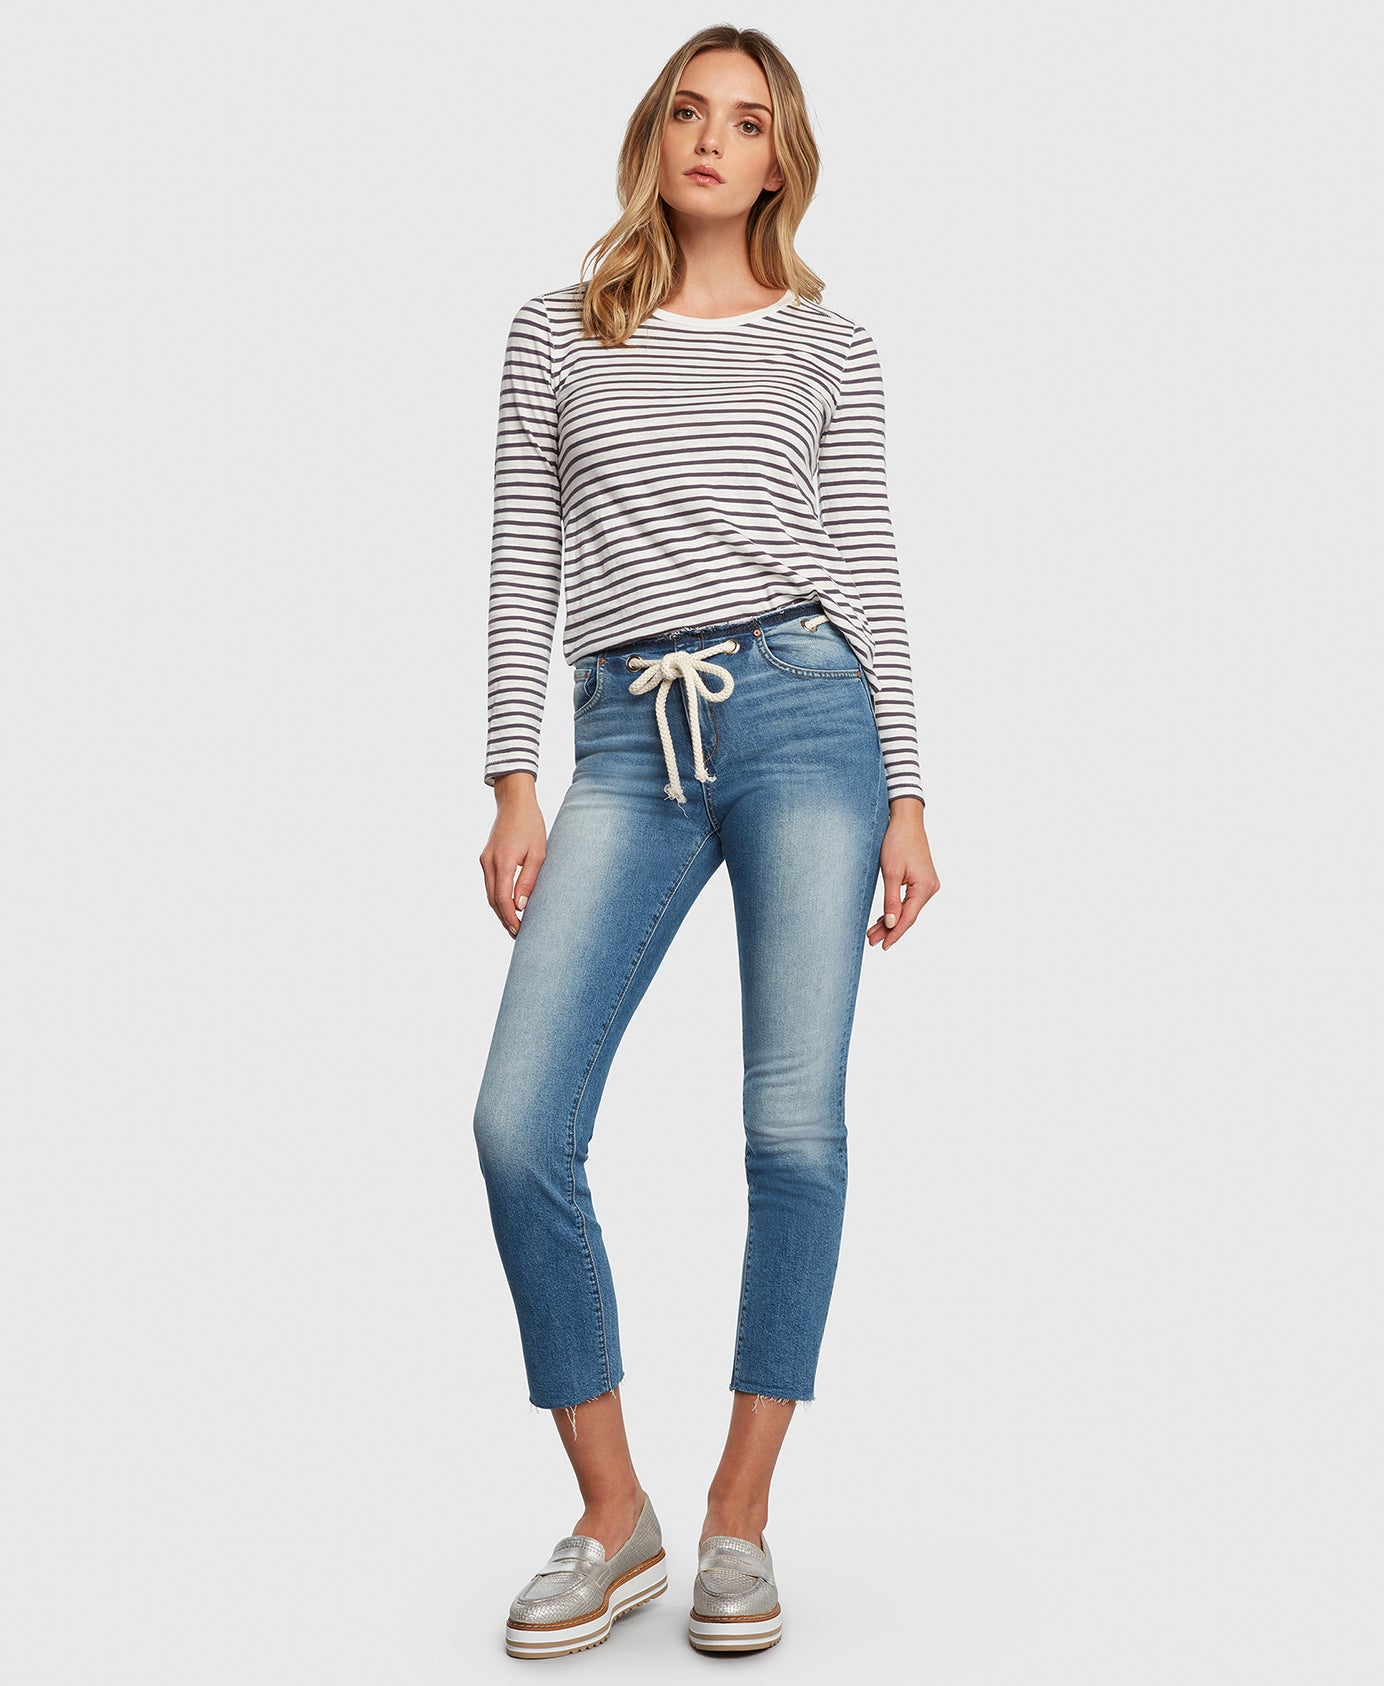 Principle CASTAWAY in Holiday cropped jeans